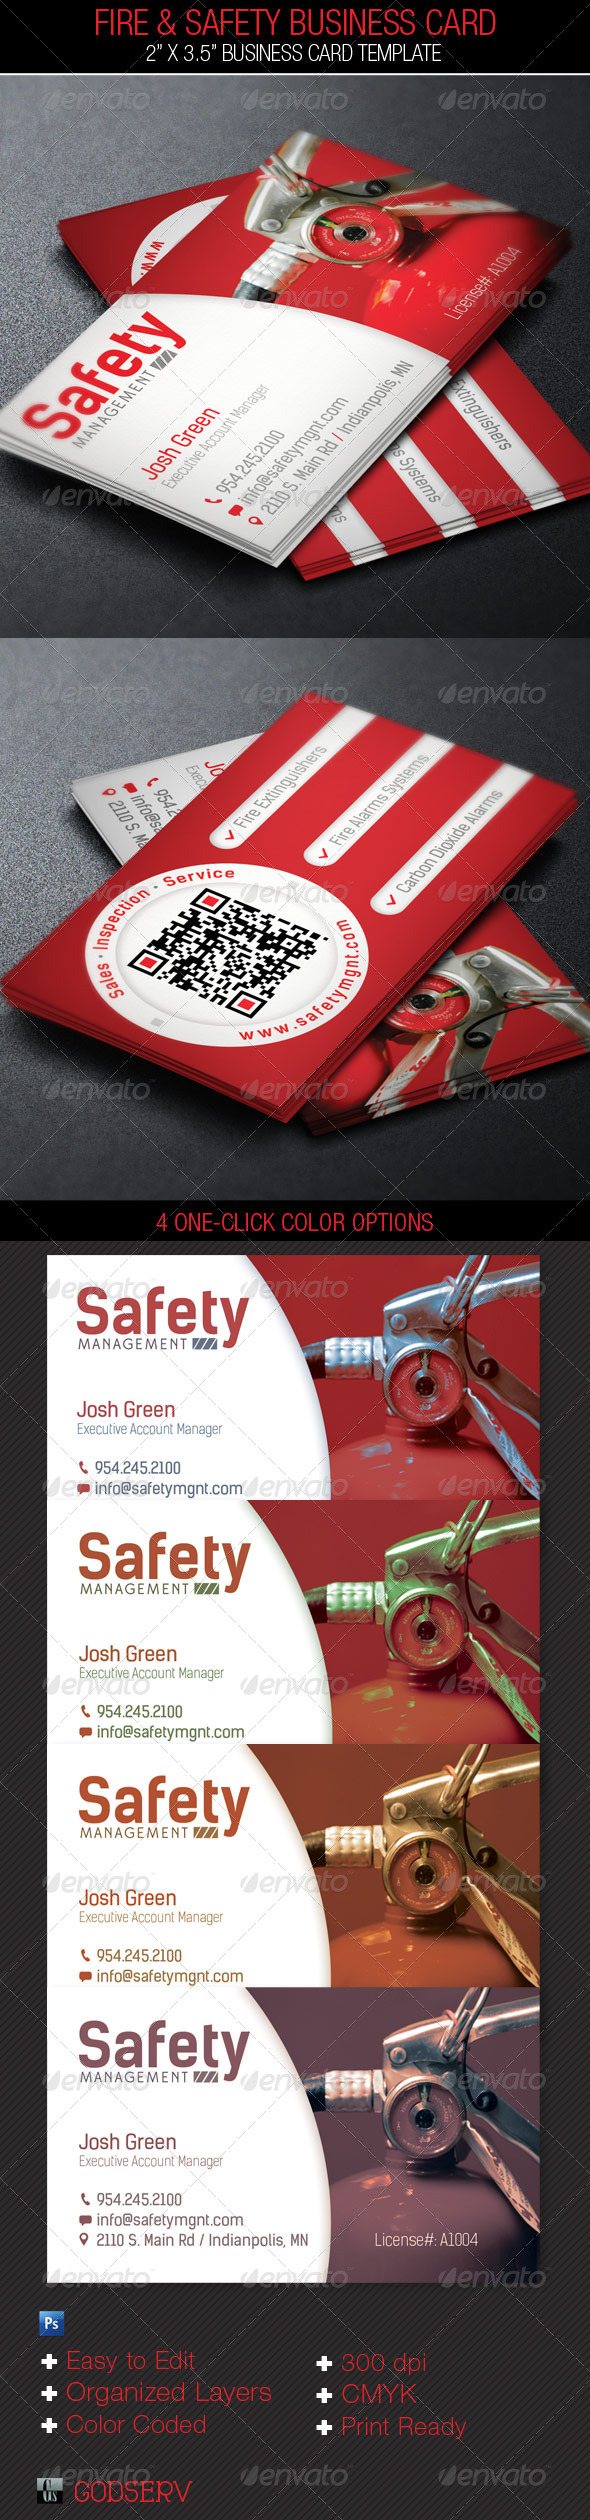 Fire Safety Service Business Card Template - Industry Specific Business Cards